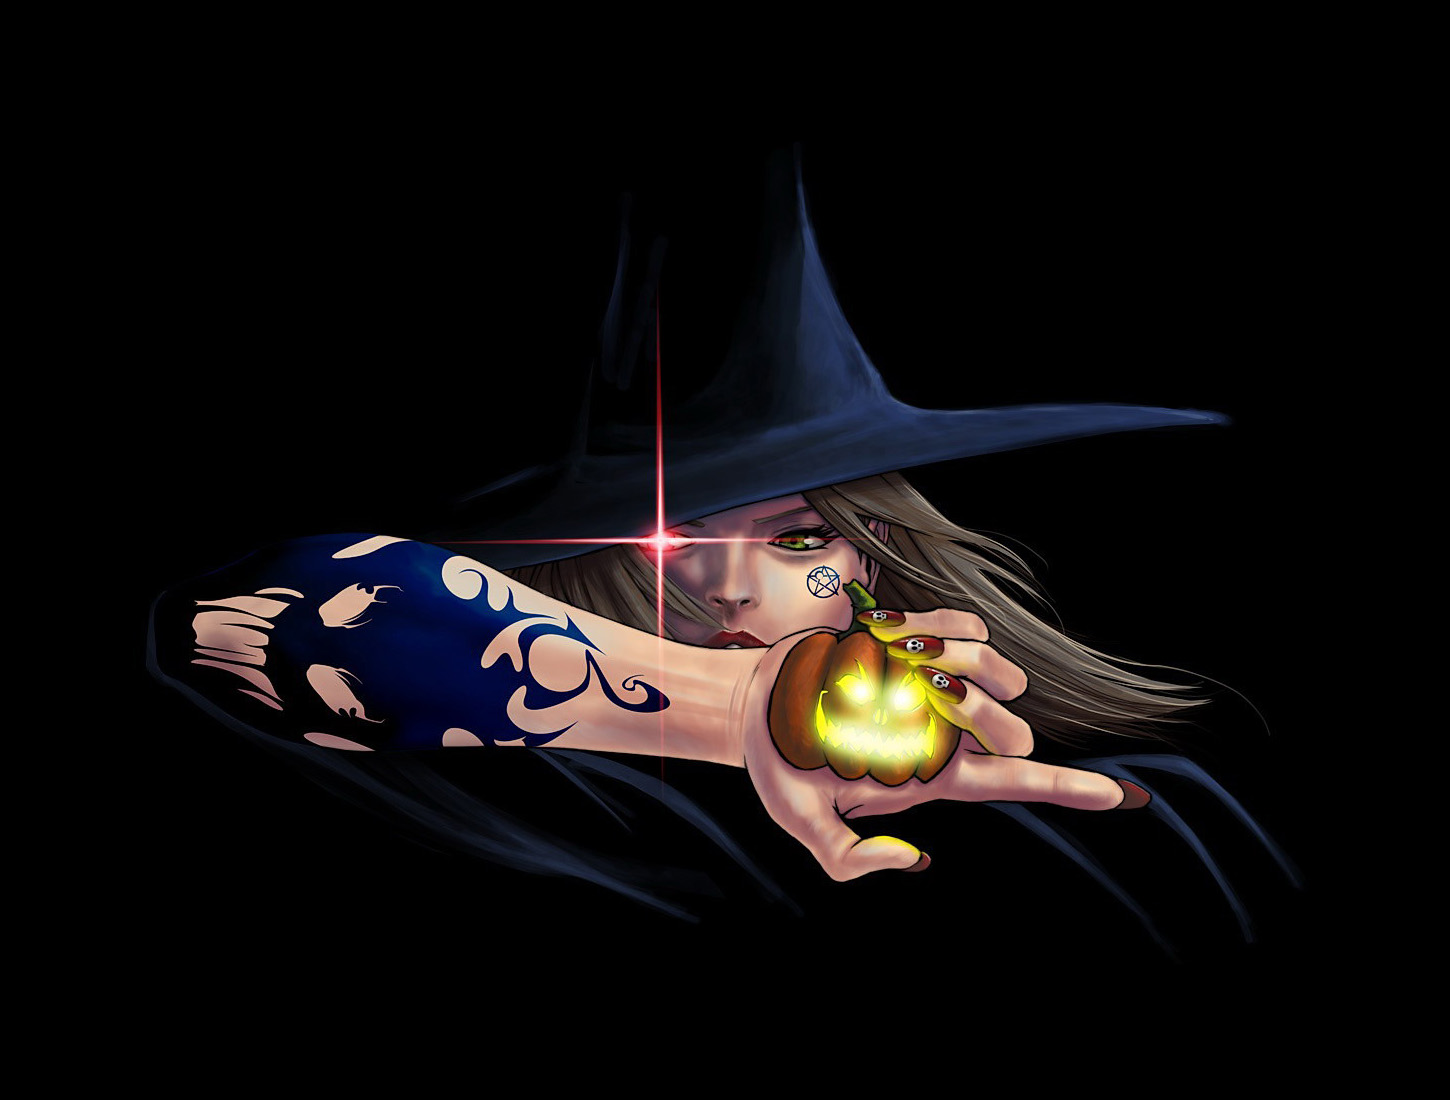 Scary Halloween 2012 HD Wallpapers Pumpkins Witches 1450x1100